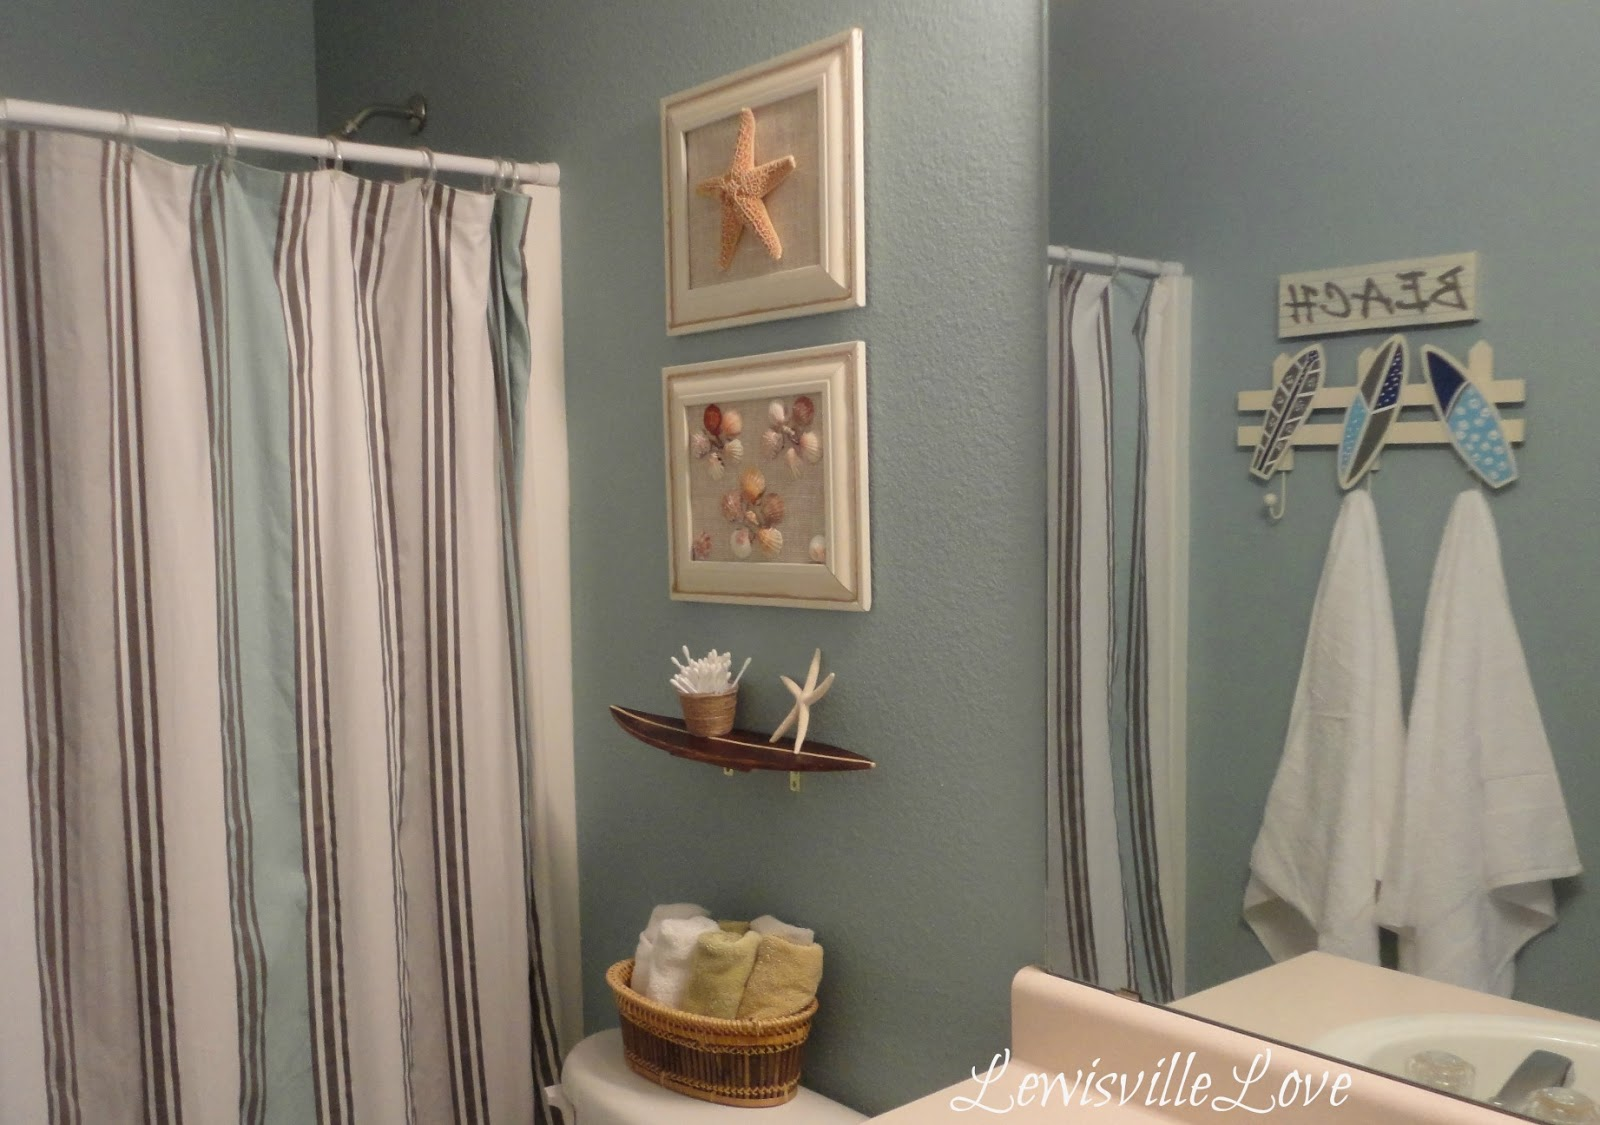 Lewisville Love: Beach Theme Bathroom Reveal